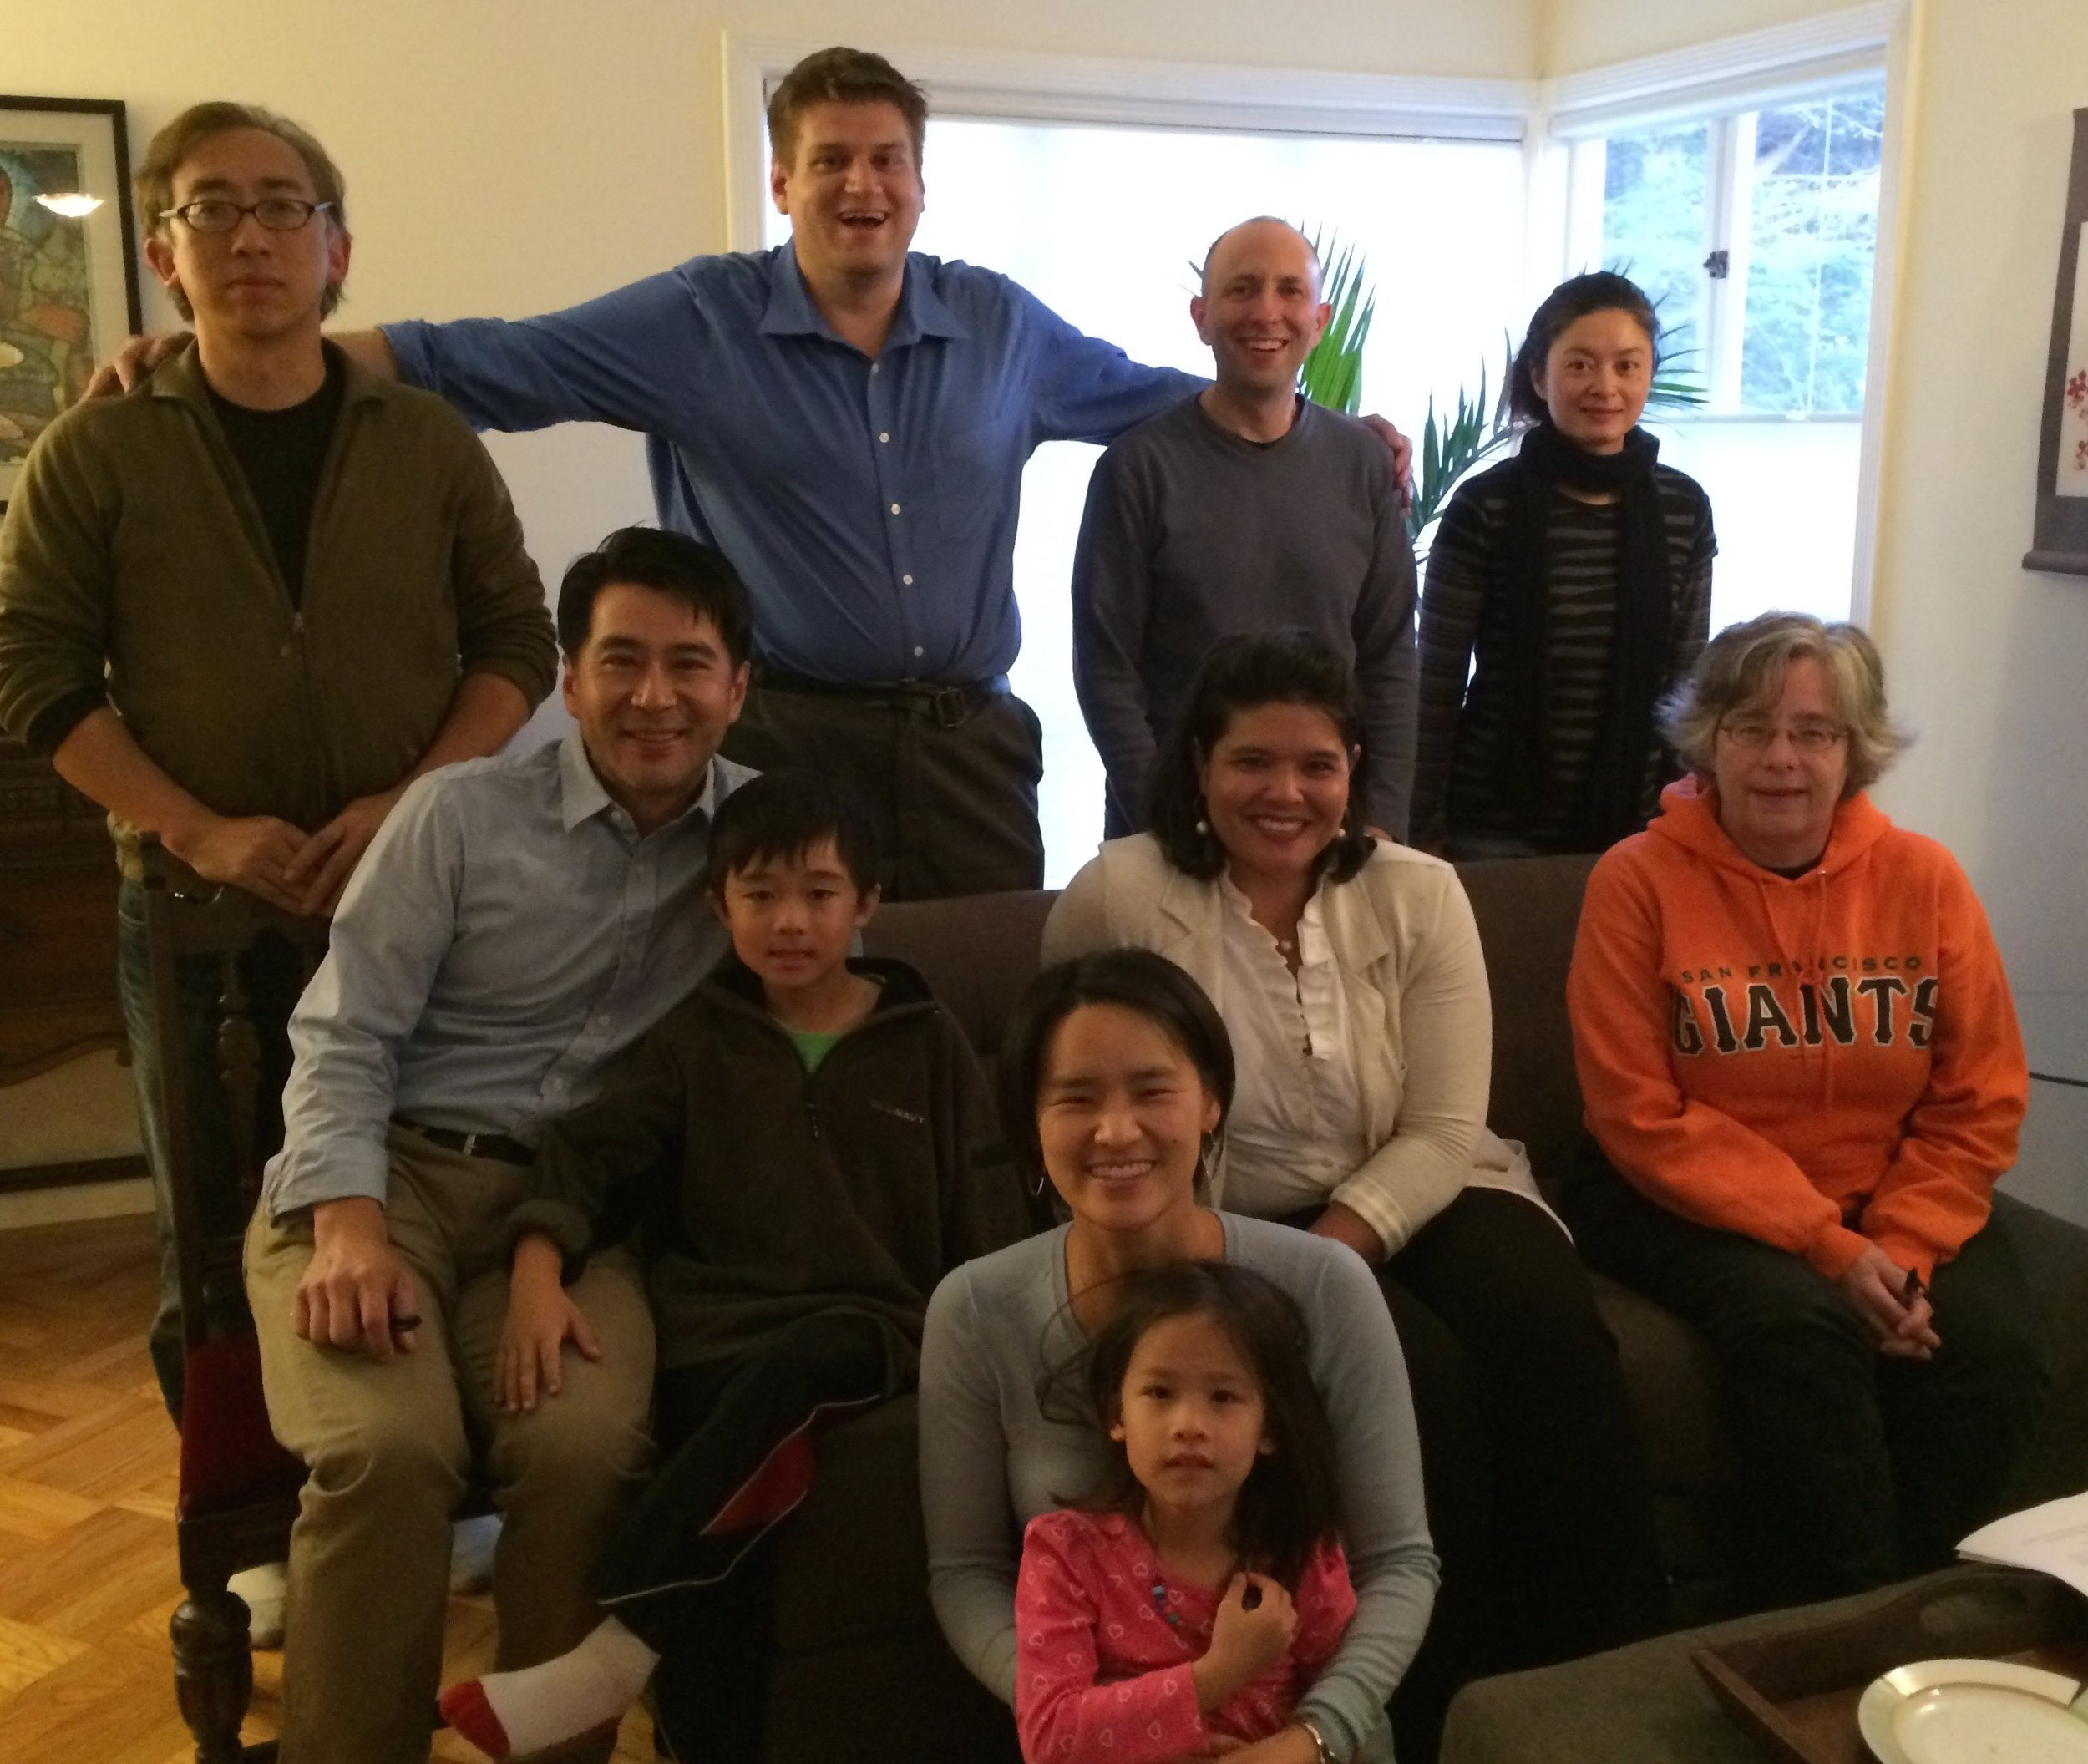 A meet & greet in the Lakeshore neighborhood to discuss how to get moderate Democrats more involved on the Westside.